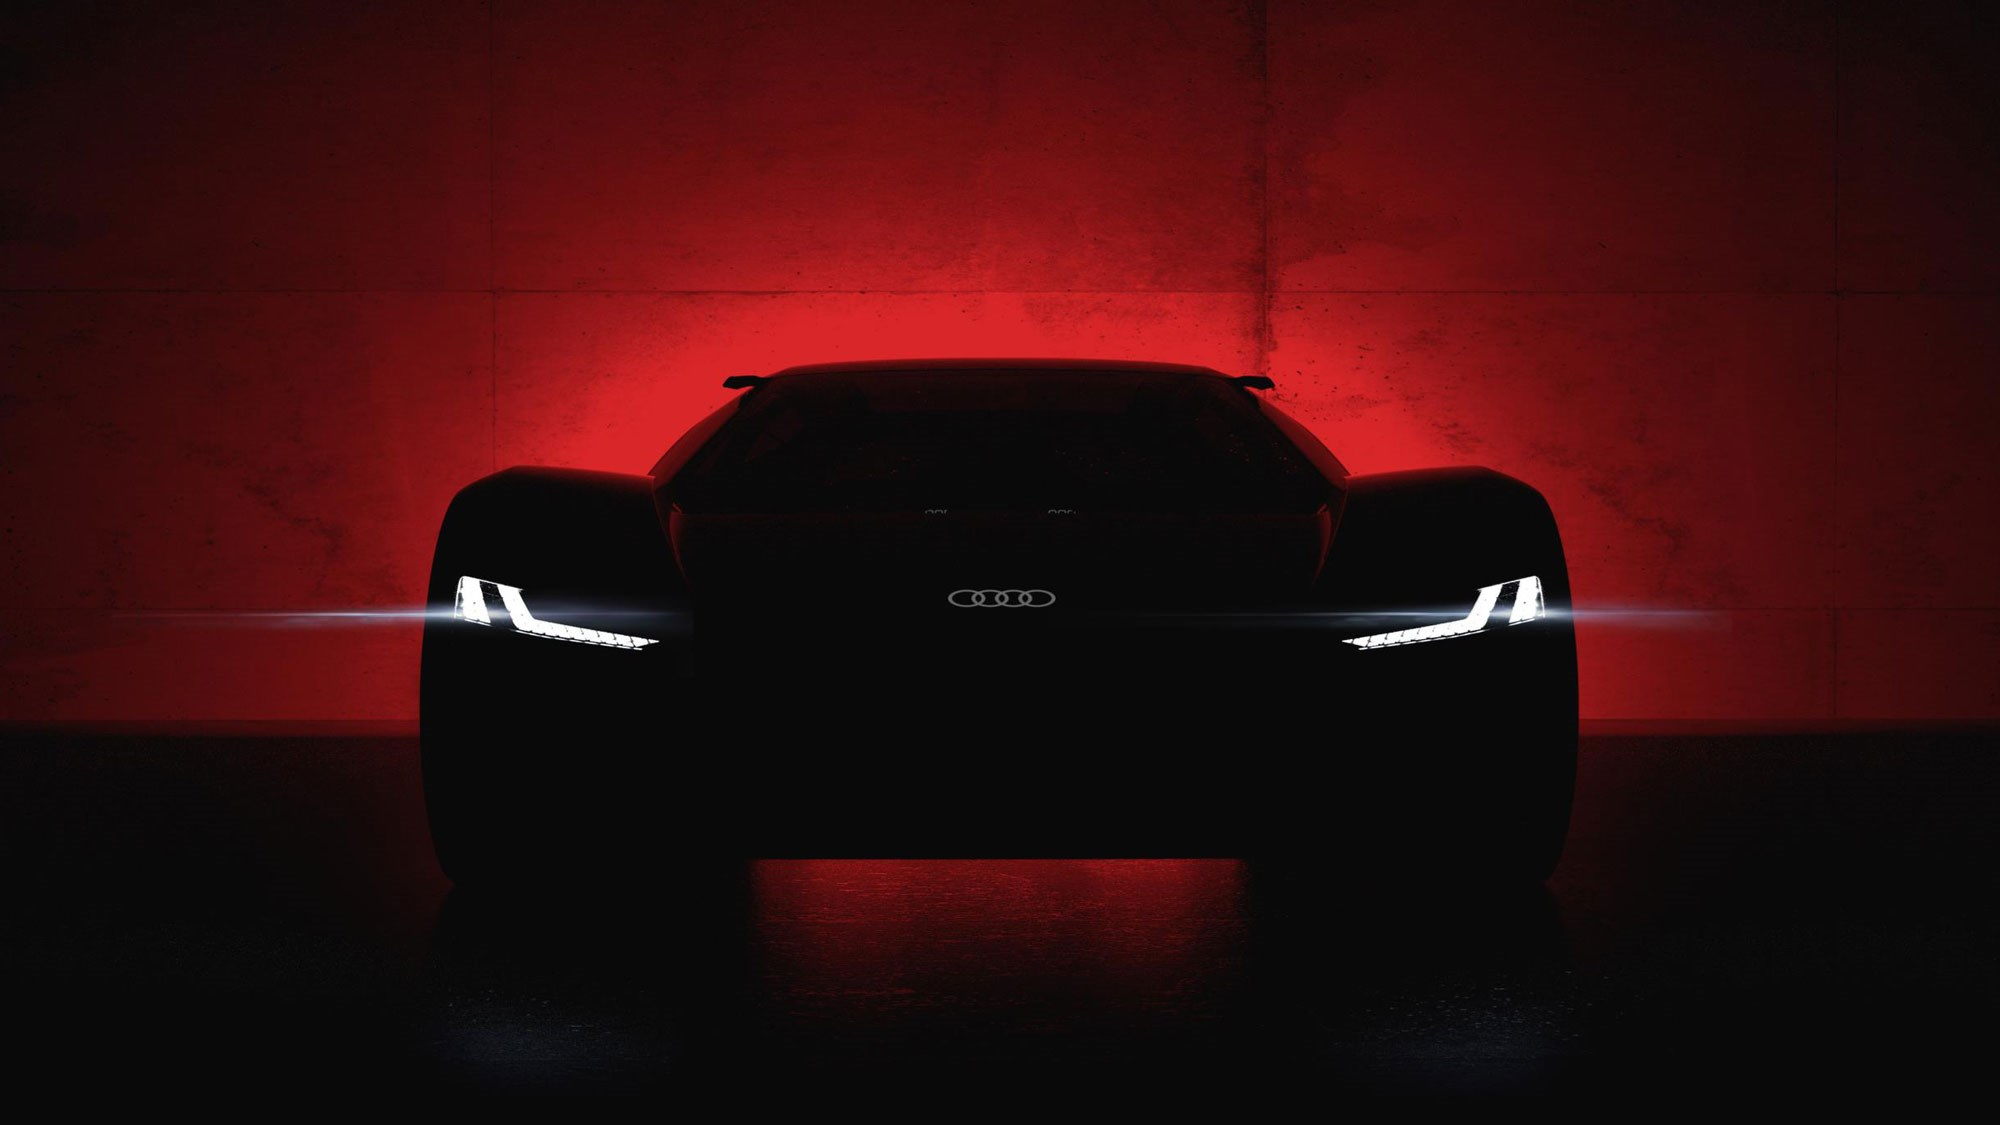 Audi PB 18 e-tron concept headed for Pebble Beach